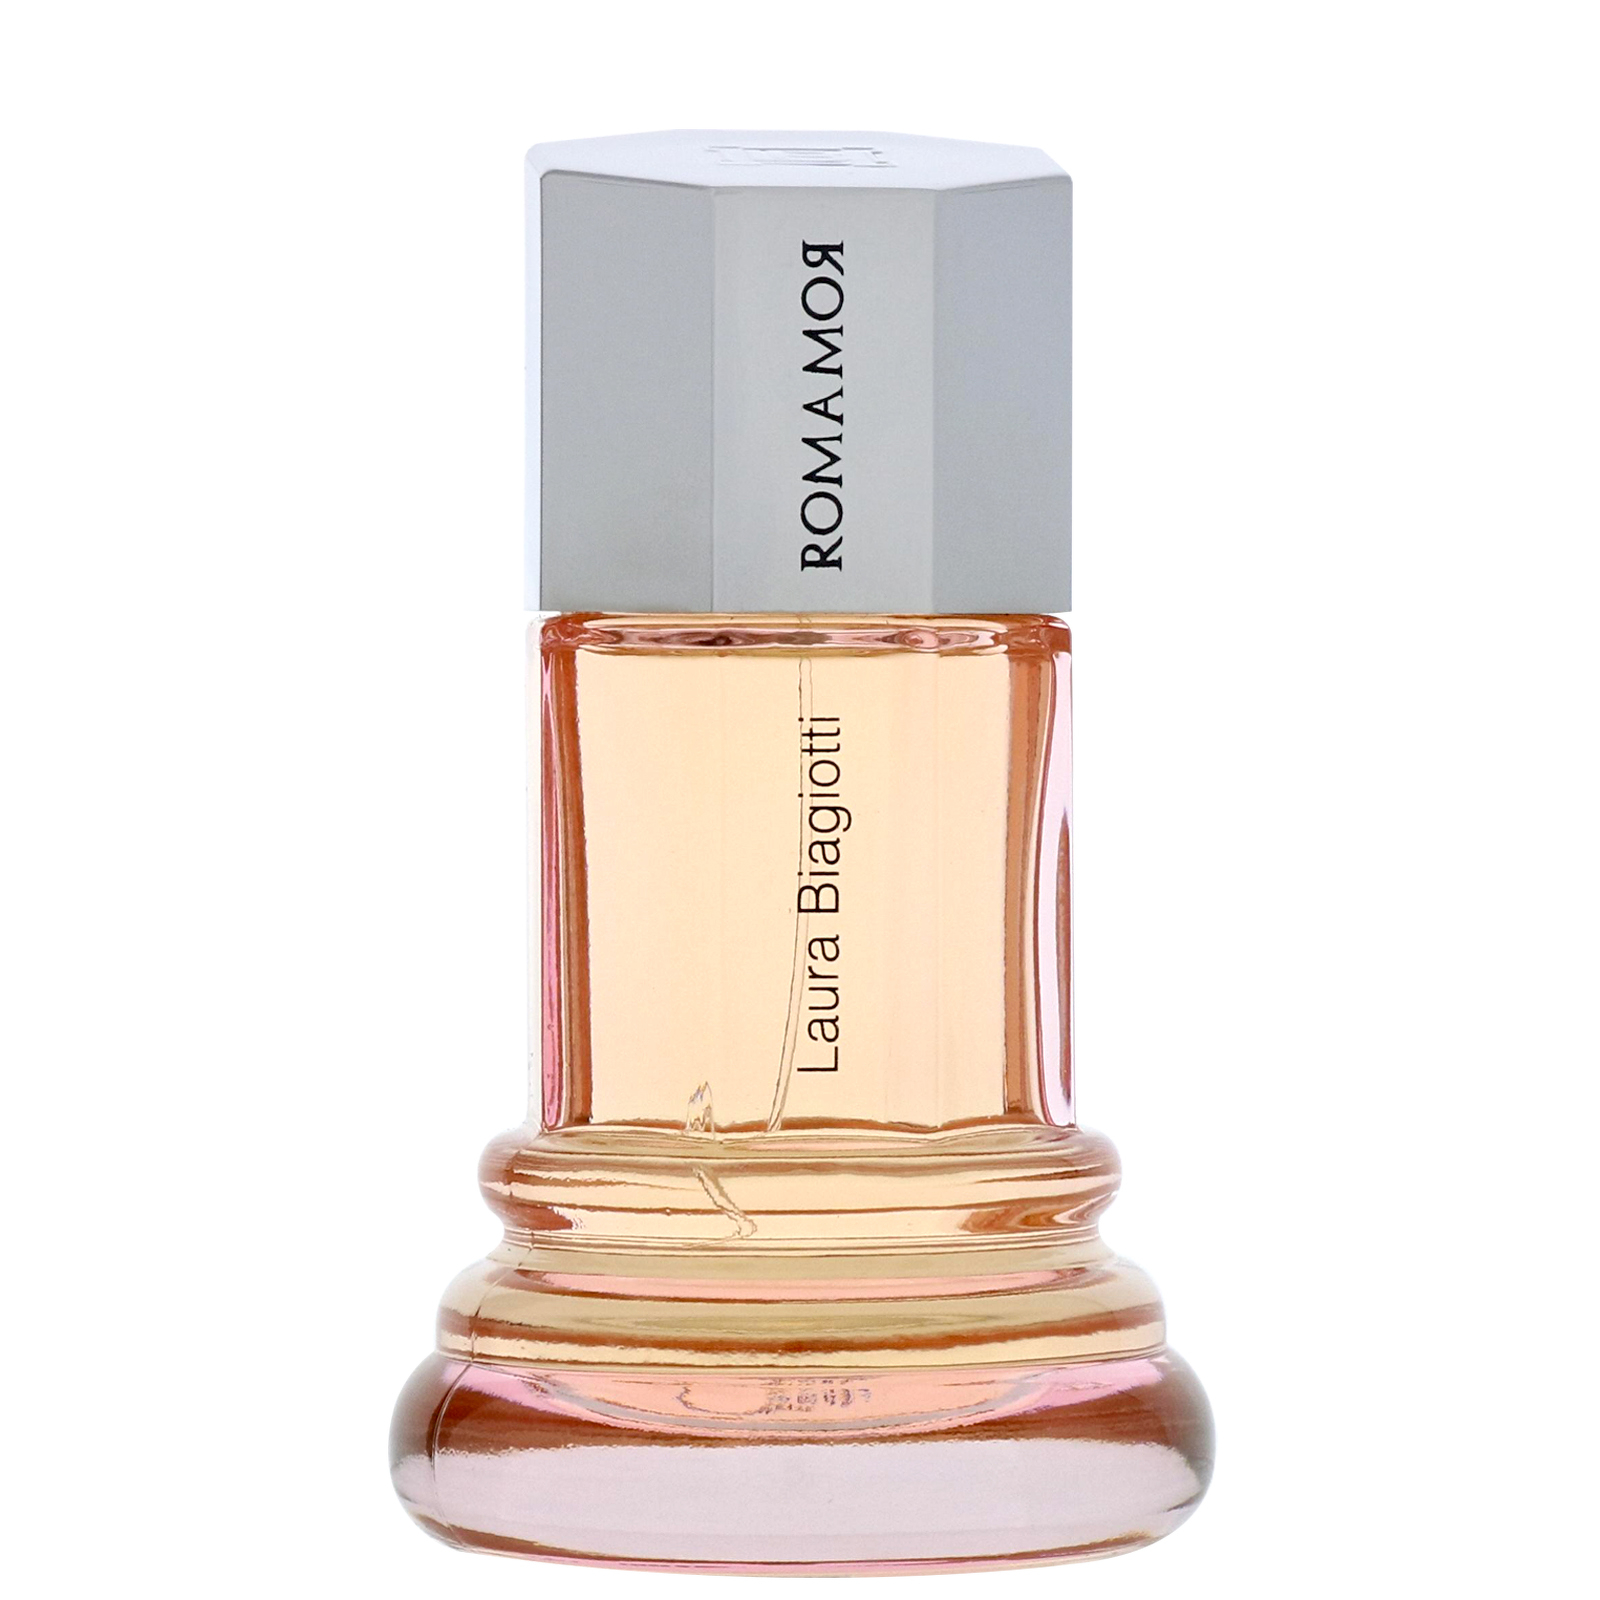 Laura Biagiotti Romamor Eau de Toilette Spray 50ml